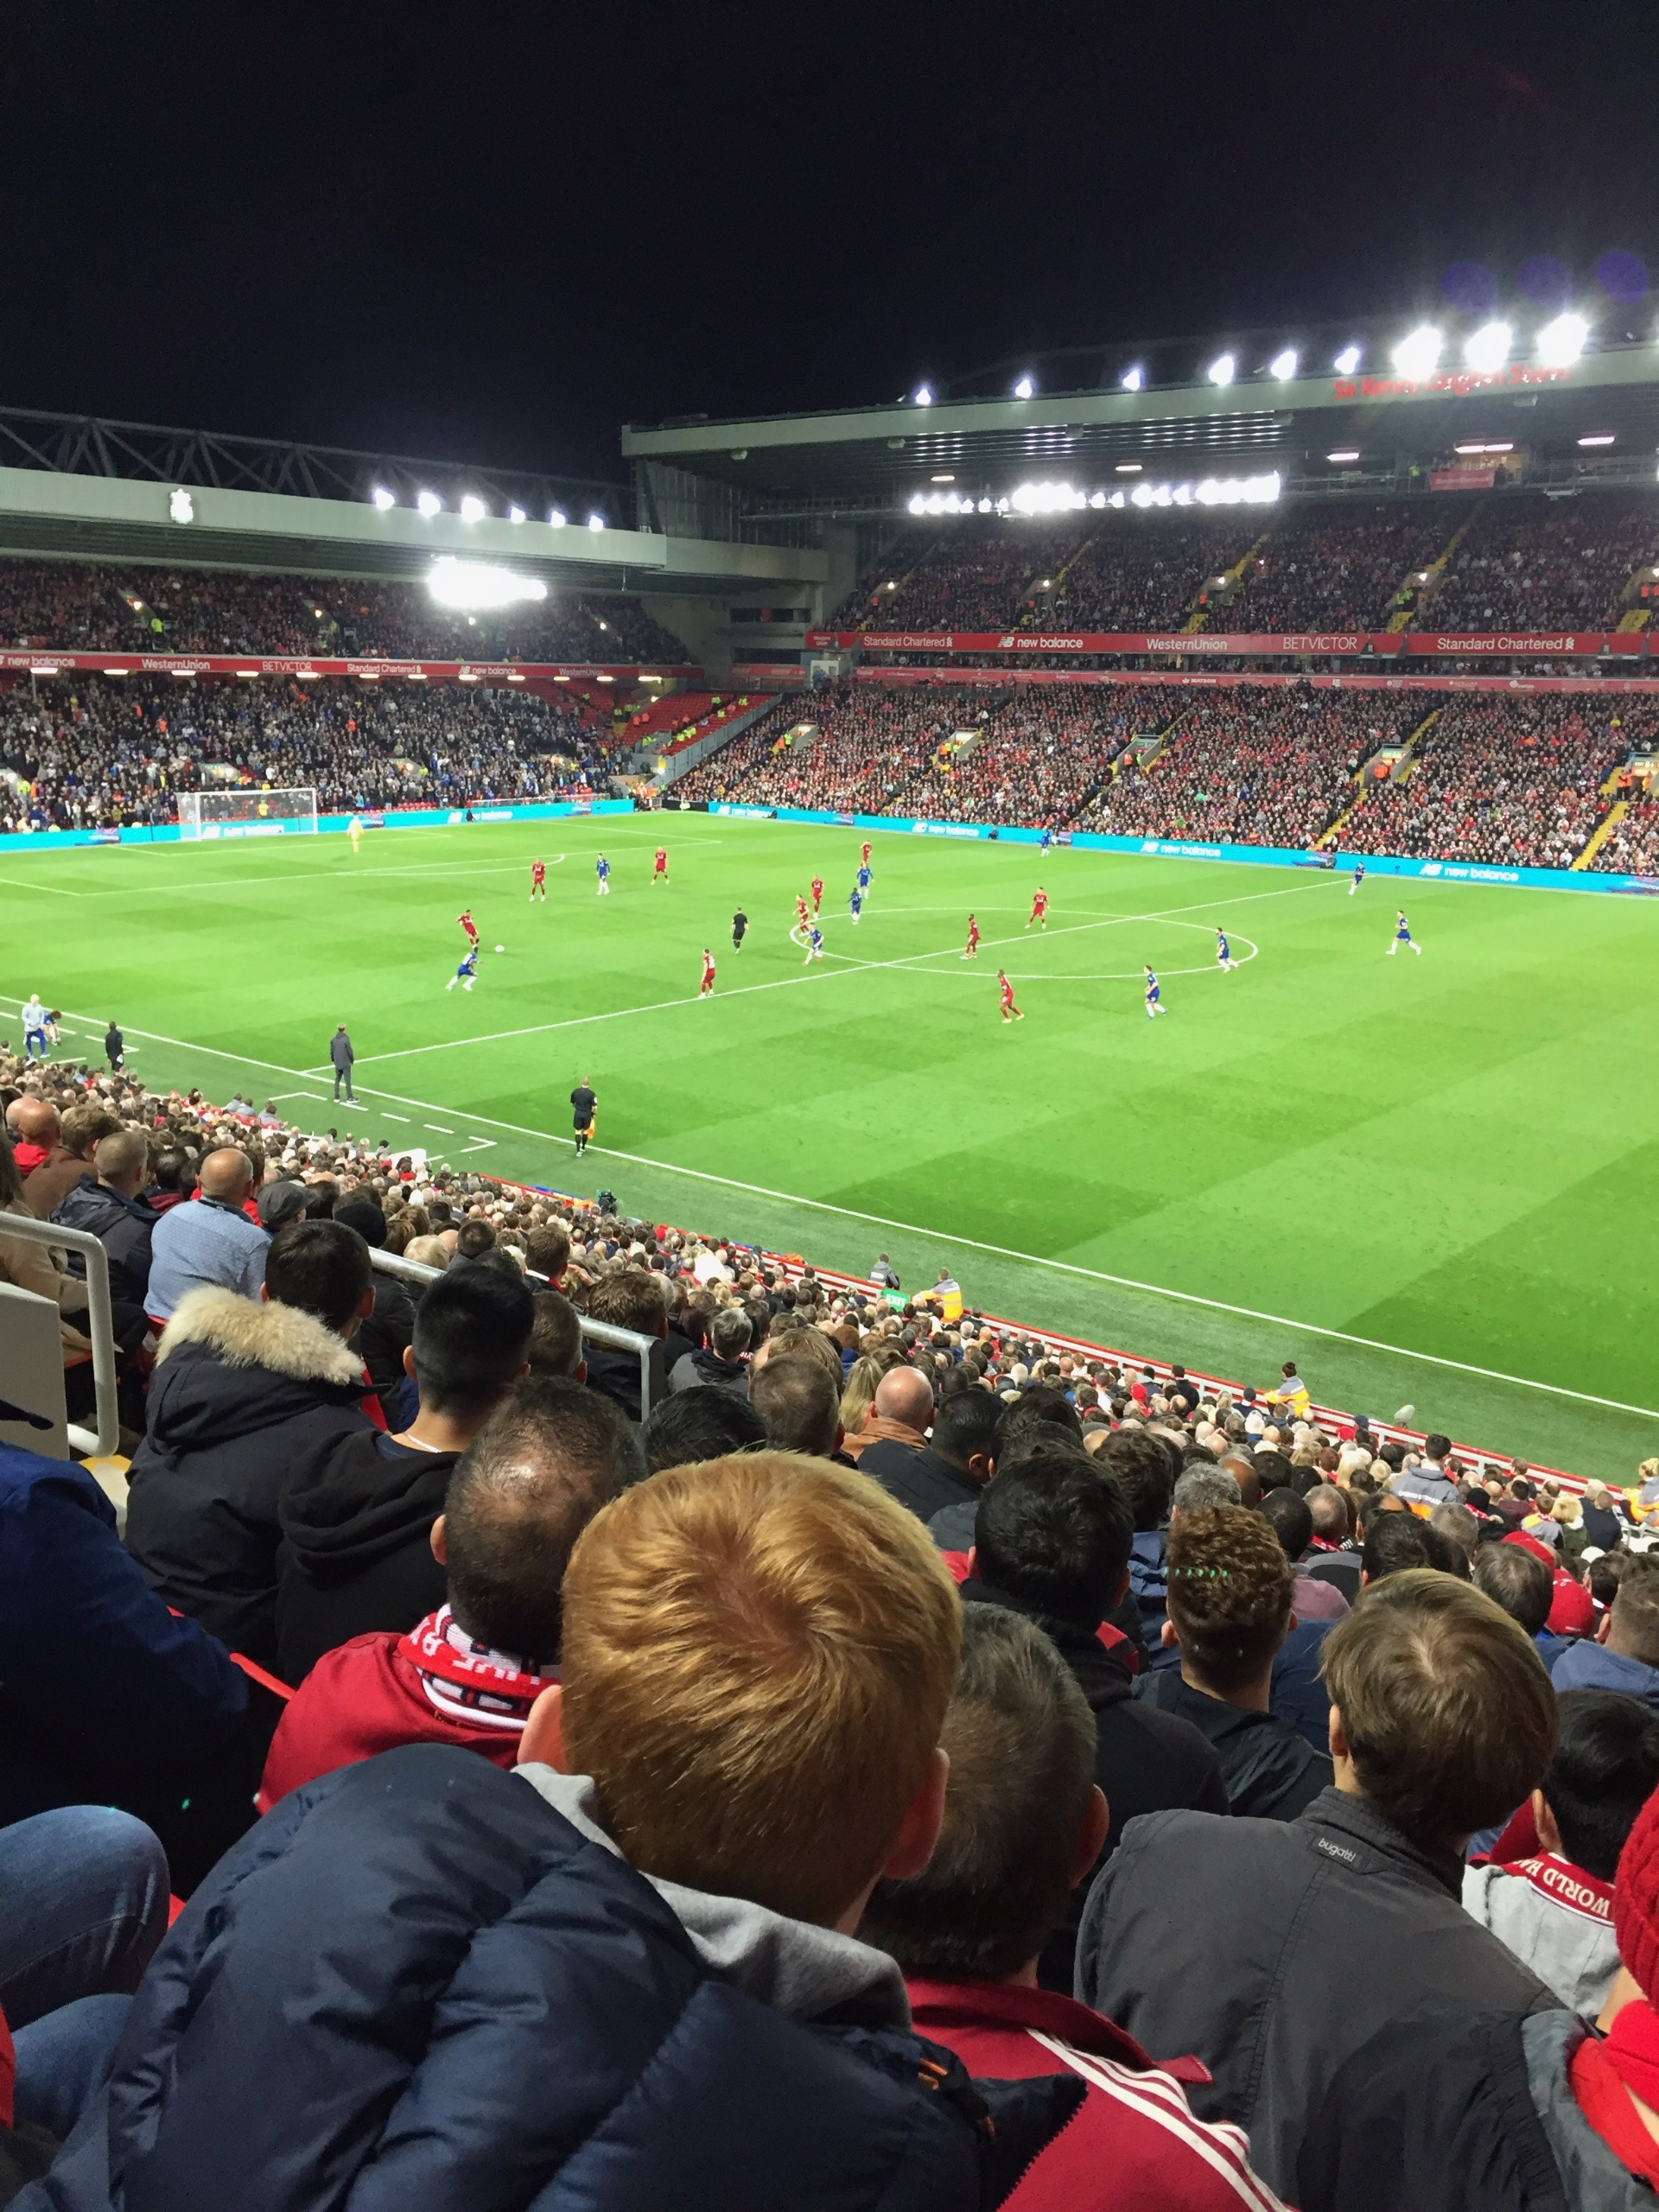 Anfield Section L16 Row 36 Seat 0215